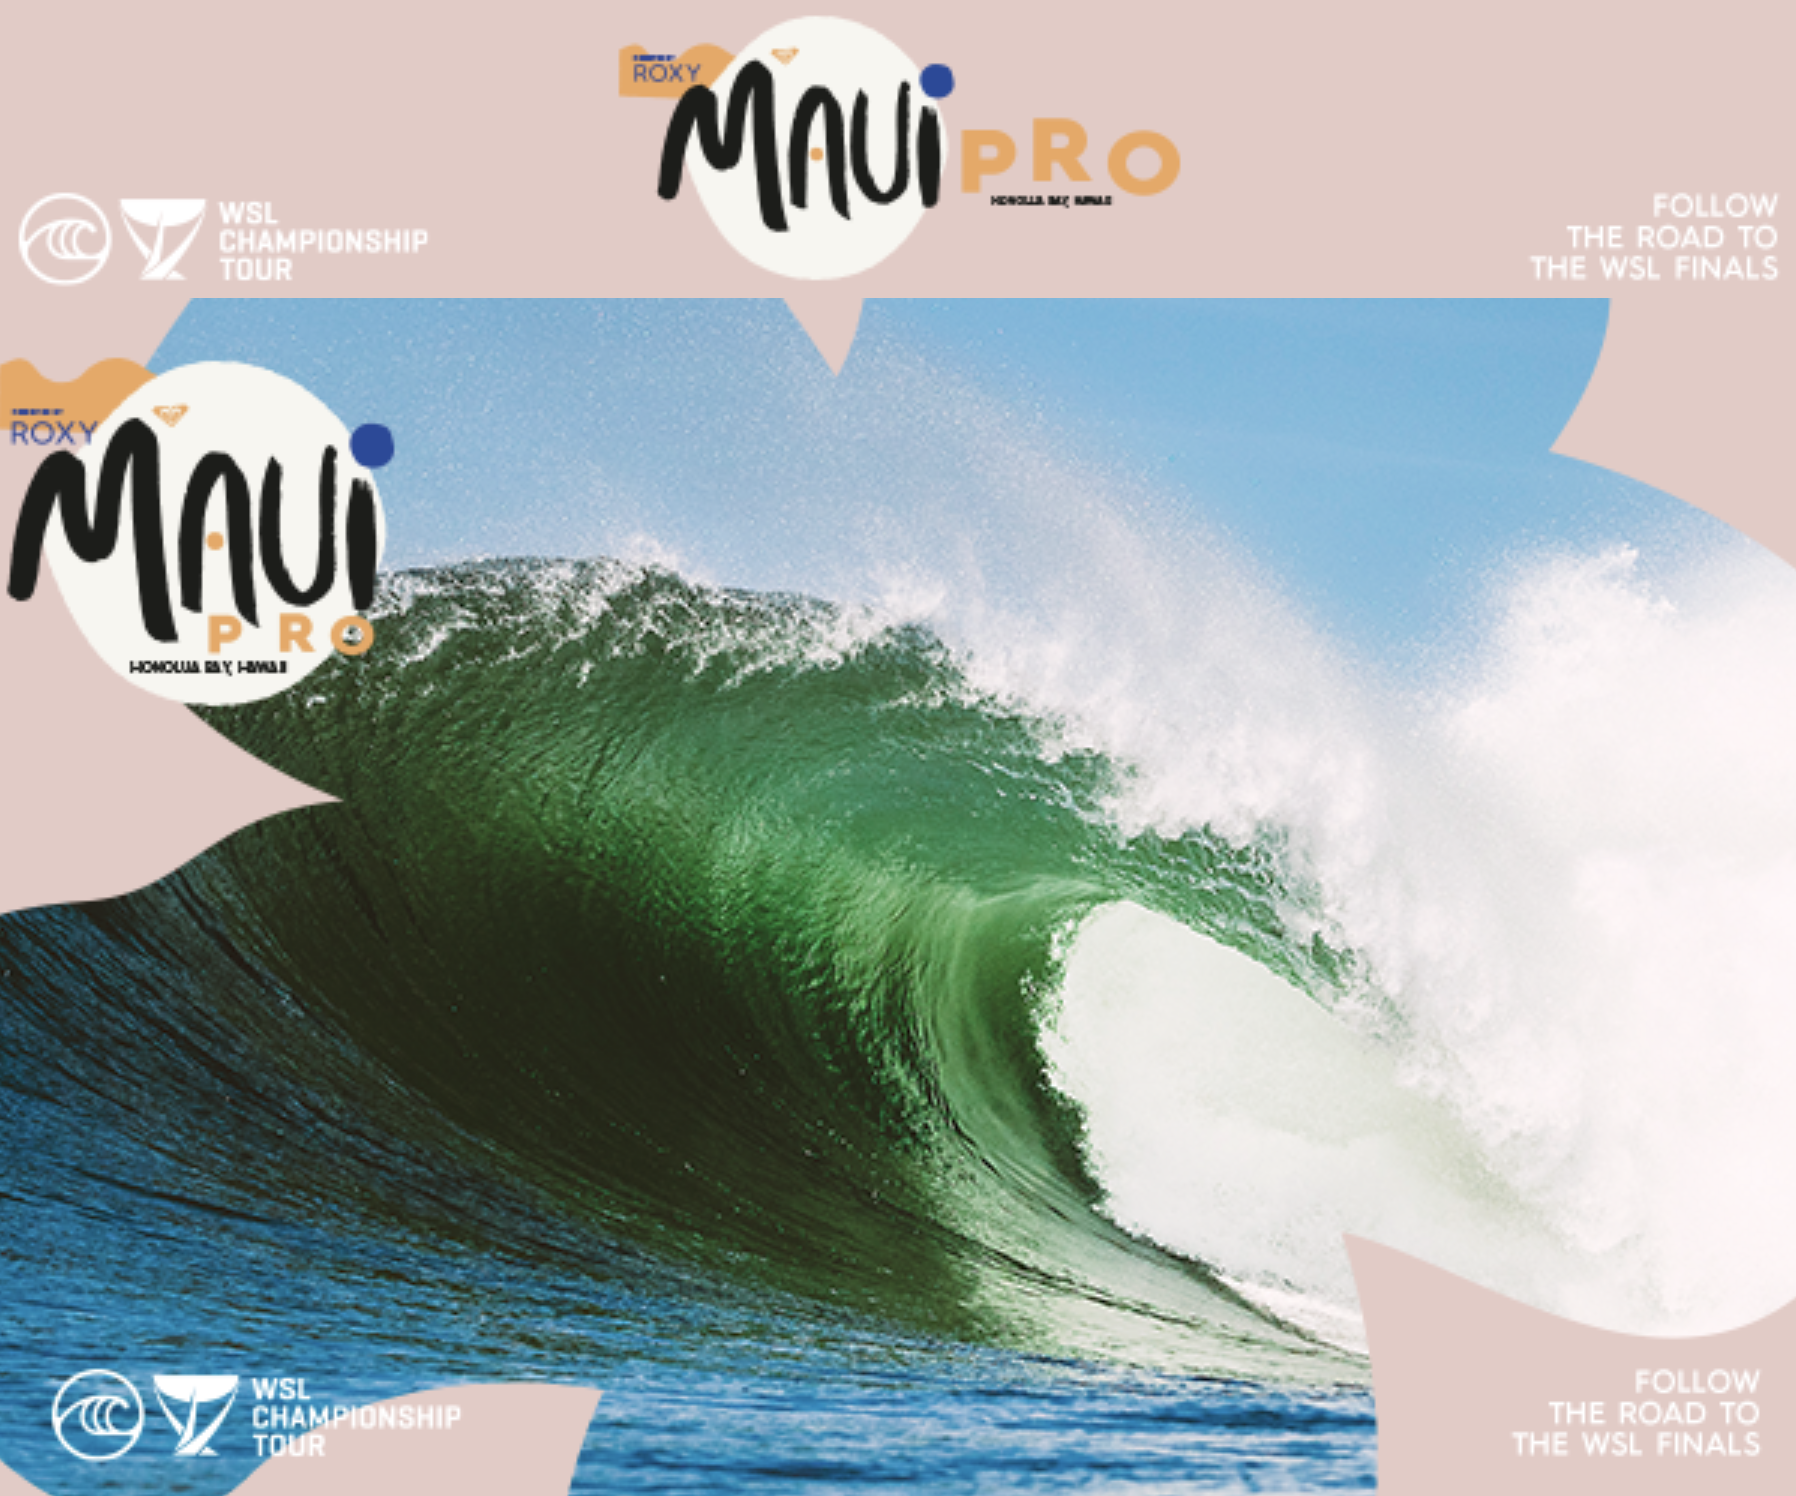 2021 World Title Hunt Begins at Honolua Bay as Top Women Prepare for Maui Pro